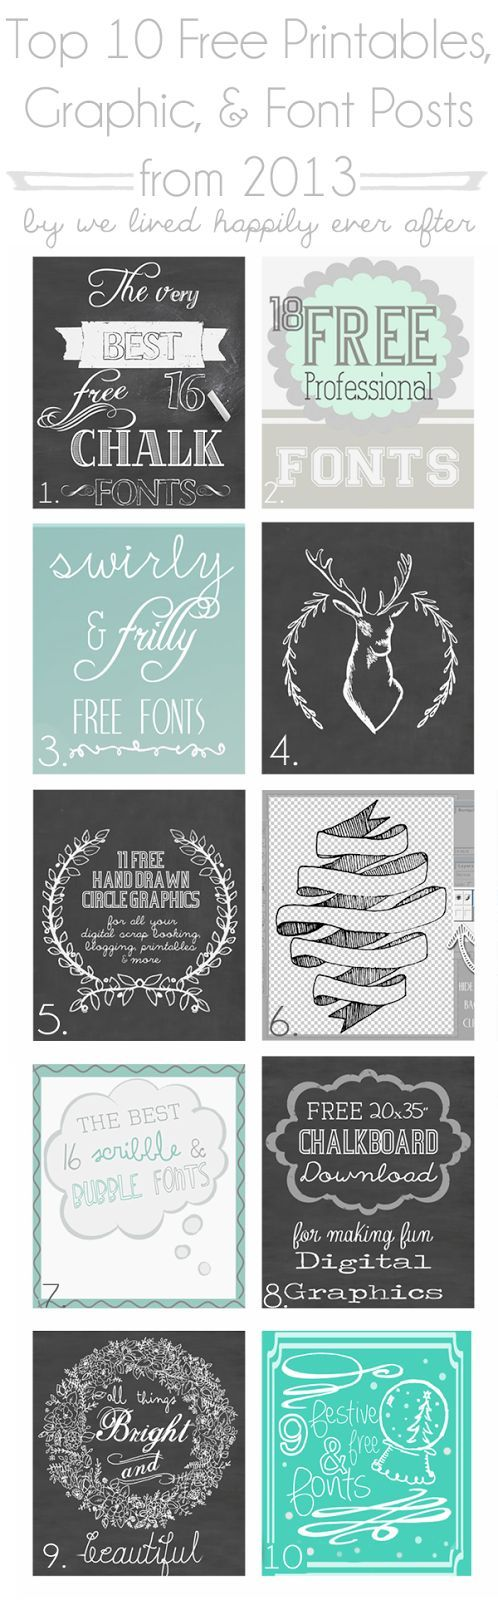 Lots of great freebies! Top 10 Free Printables, Graphic, & Font Posts from 2013 This girl's blog is awesome! Lot's of great how to's with graphic for Free! :)